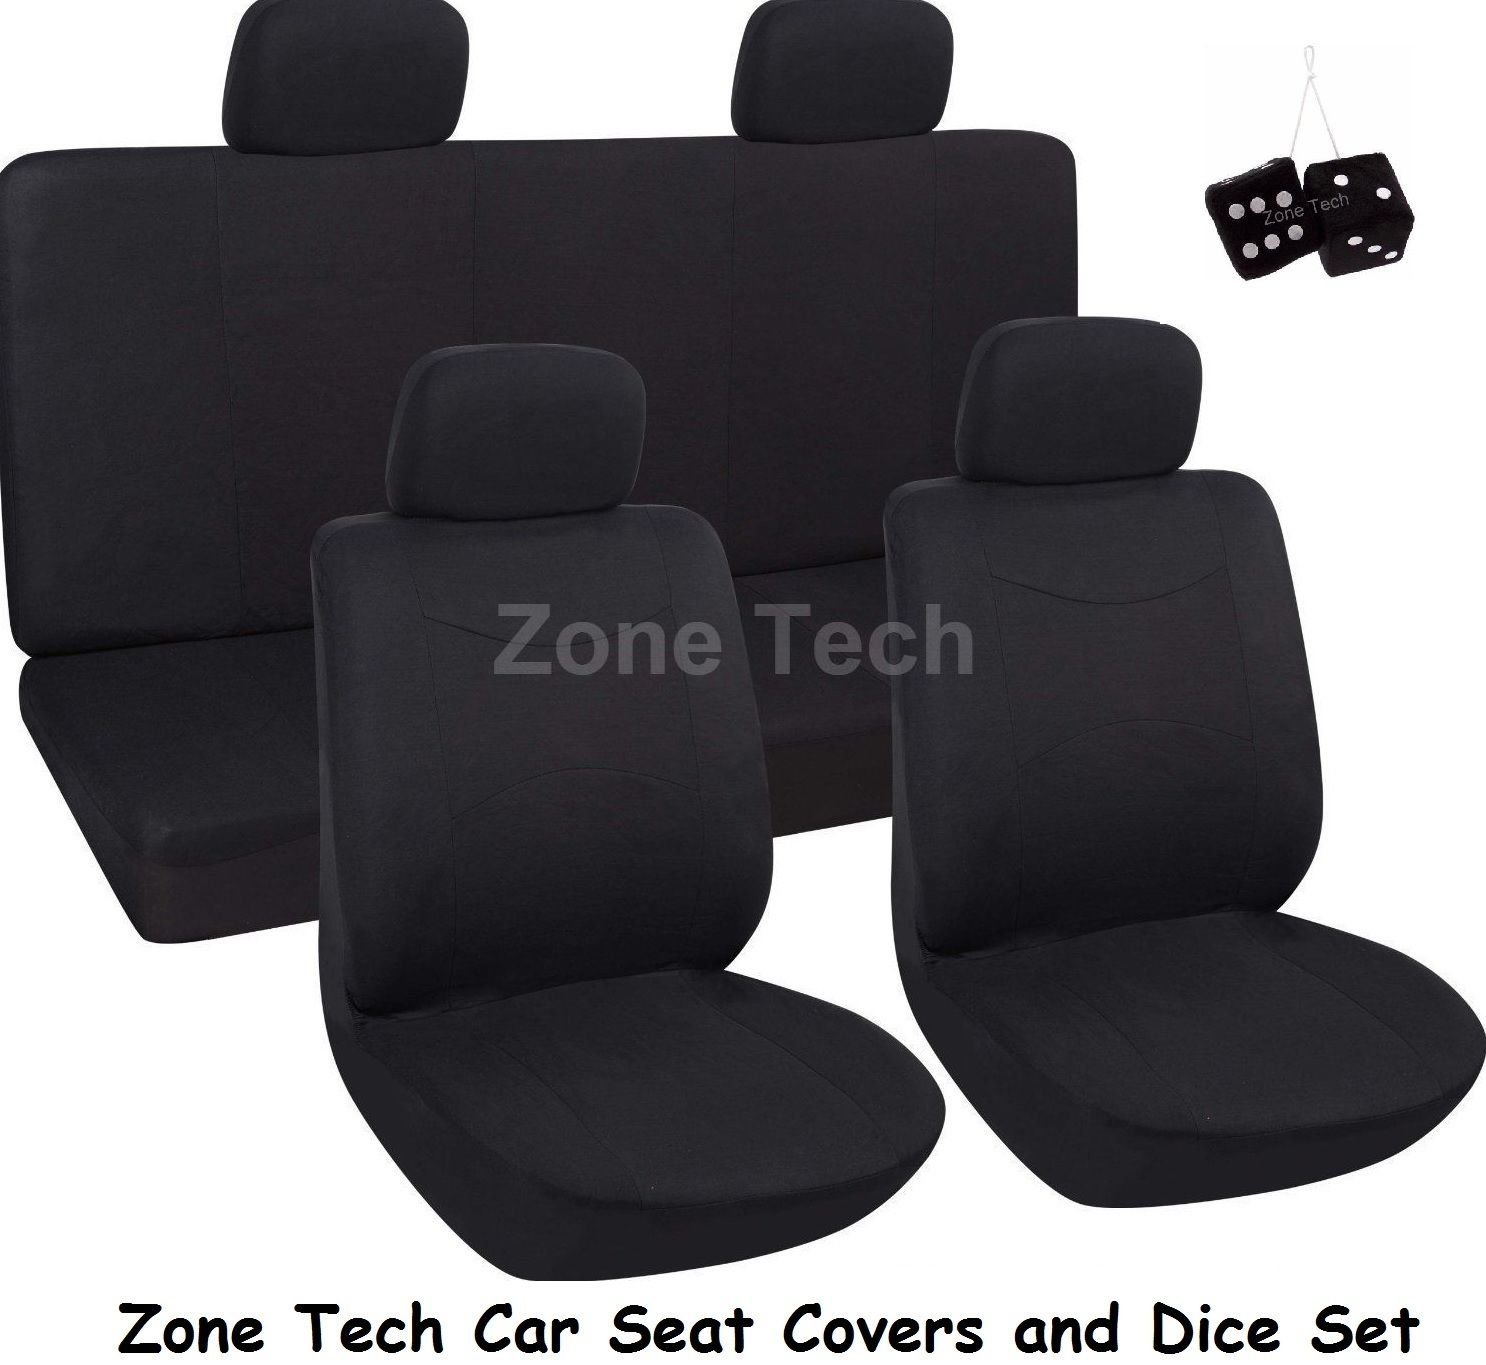 Zone Tech Universal Fit Premium Quality Luxury Interior D��cor Cloth Full Set of Solid Black Seat Covers+ Pair of Classic Black Plush Hanging Fuzzy Dice Set